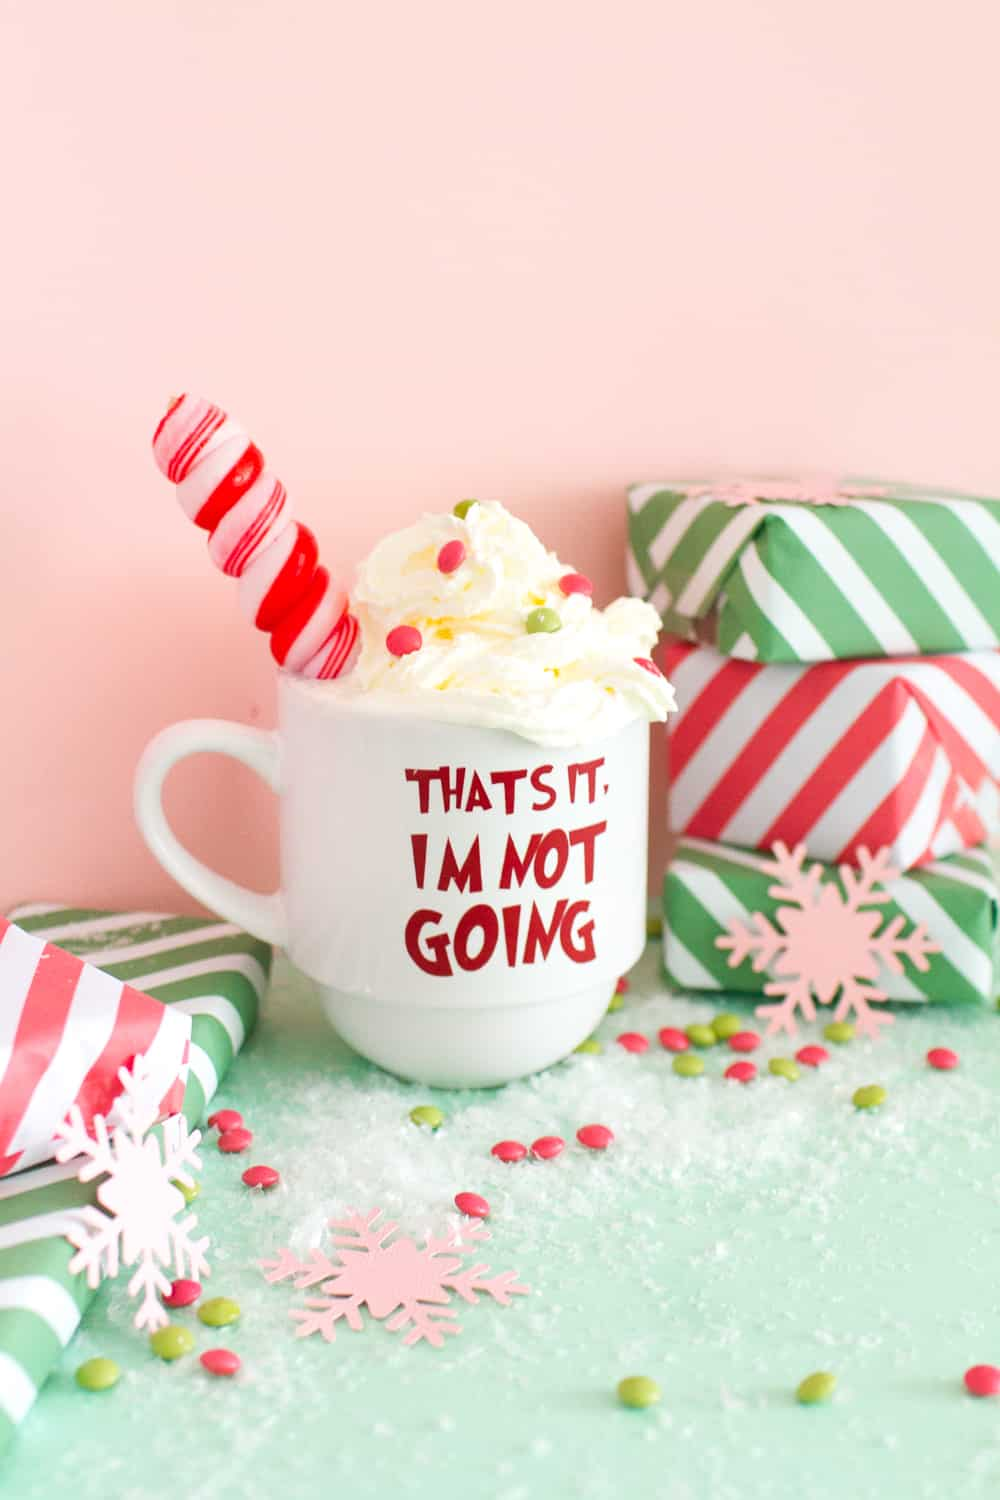 Diy Grinch Quote Glasses For A Grinch Themed Christmas Movie Party Bespoke Bride Wedding Blog